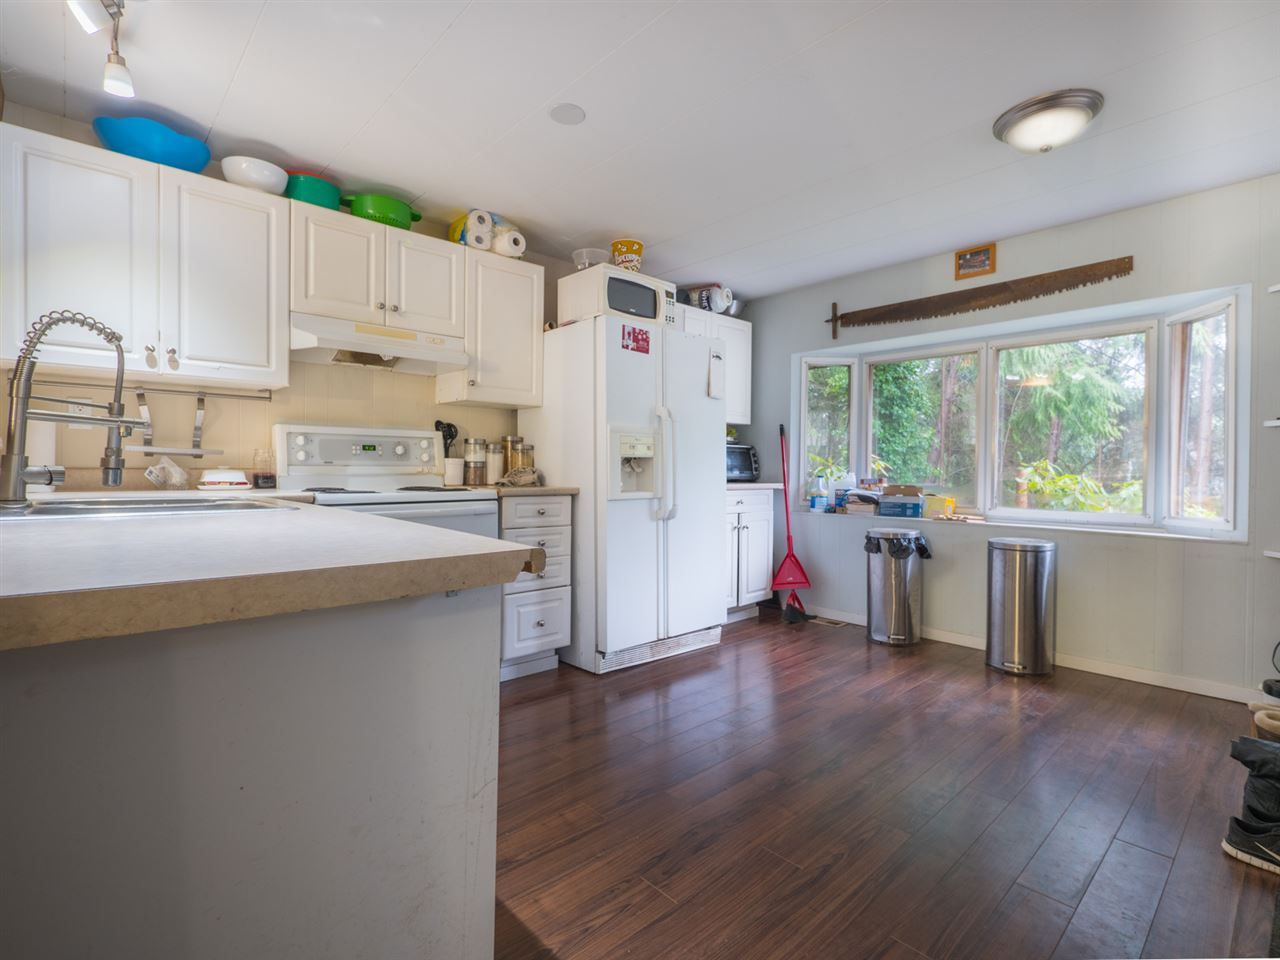 Photo 4: Photos: 5592 WAKEFIELD Road in Sechelt: Sechelt District Manufactured Home for sale (Sunshine Coast)  : MLS® # R2230720